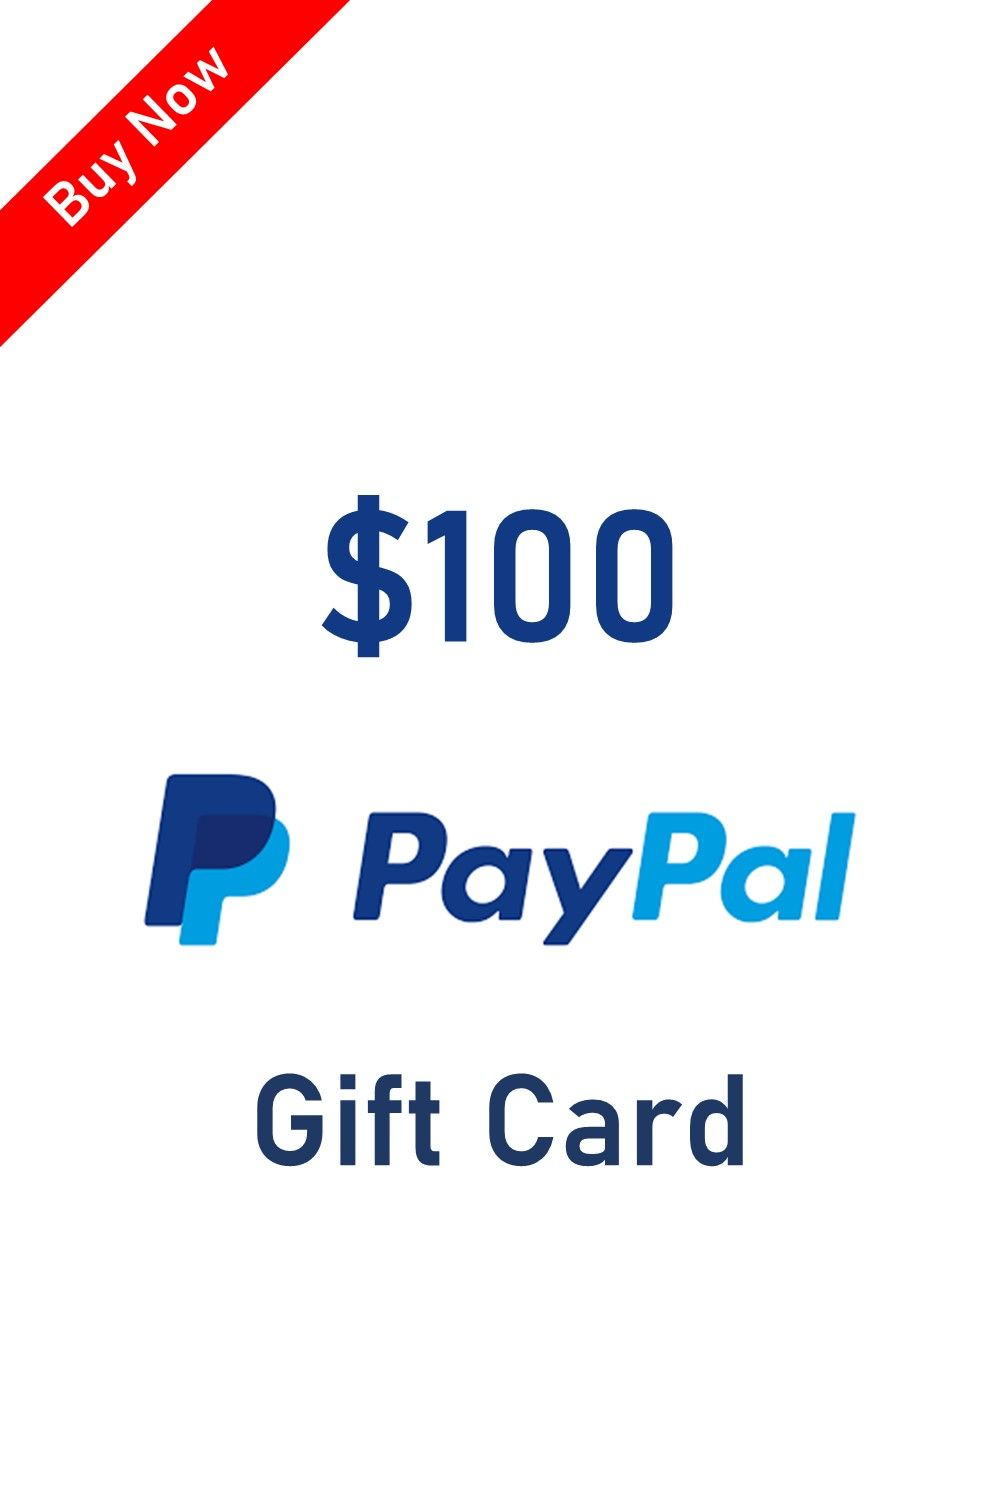 Buy Paypal Gift Card Online With Paypal And Credit Card Buy Gift Cards Online Buy Gift Cards Paypal Gift Card